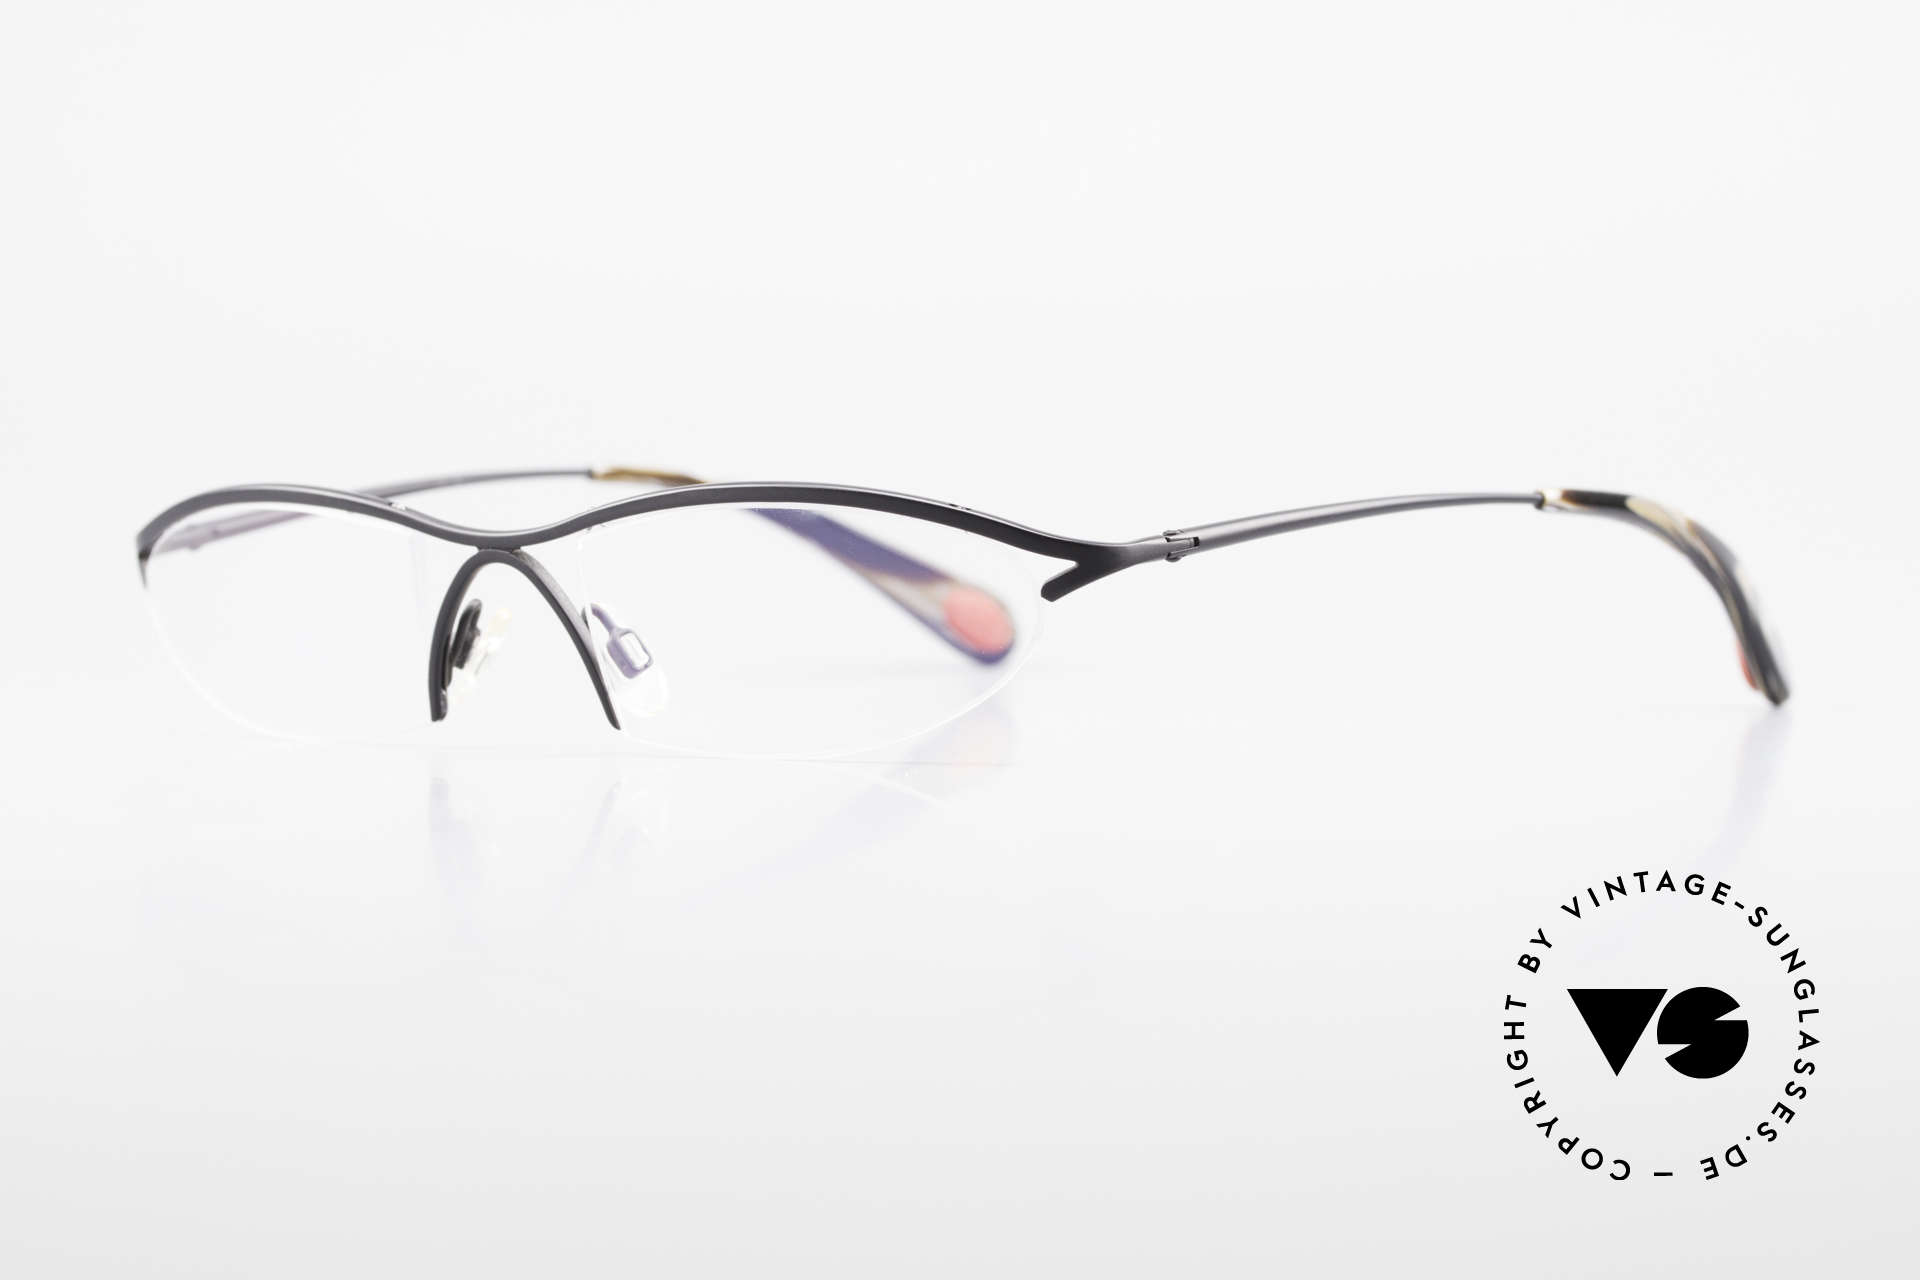 Bugatti 342 Odotype Nylor Frame Semi Rimless, ergonomic metal frame with spring hinges, Made for Men